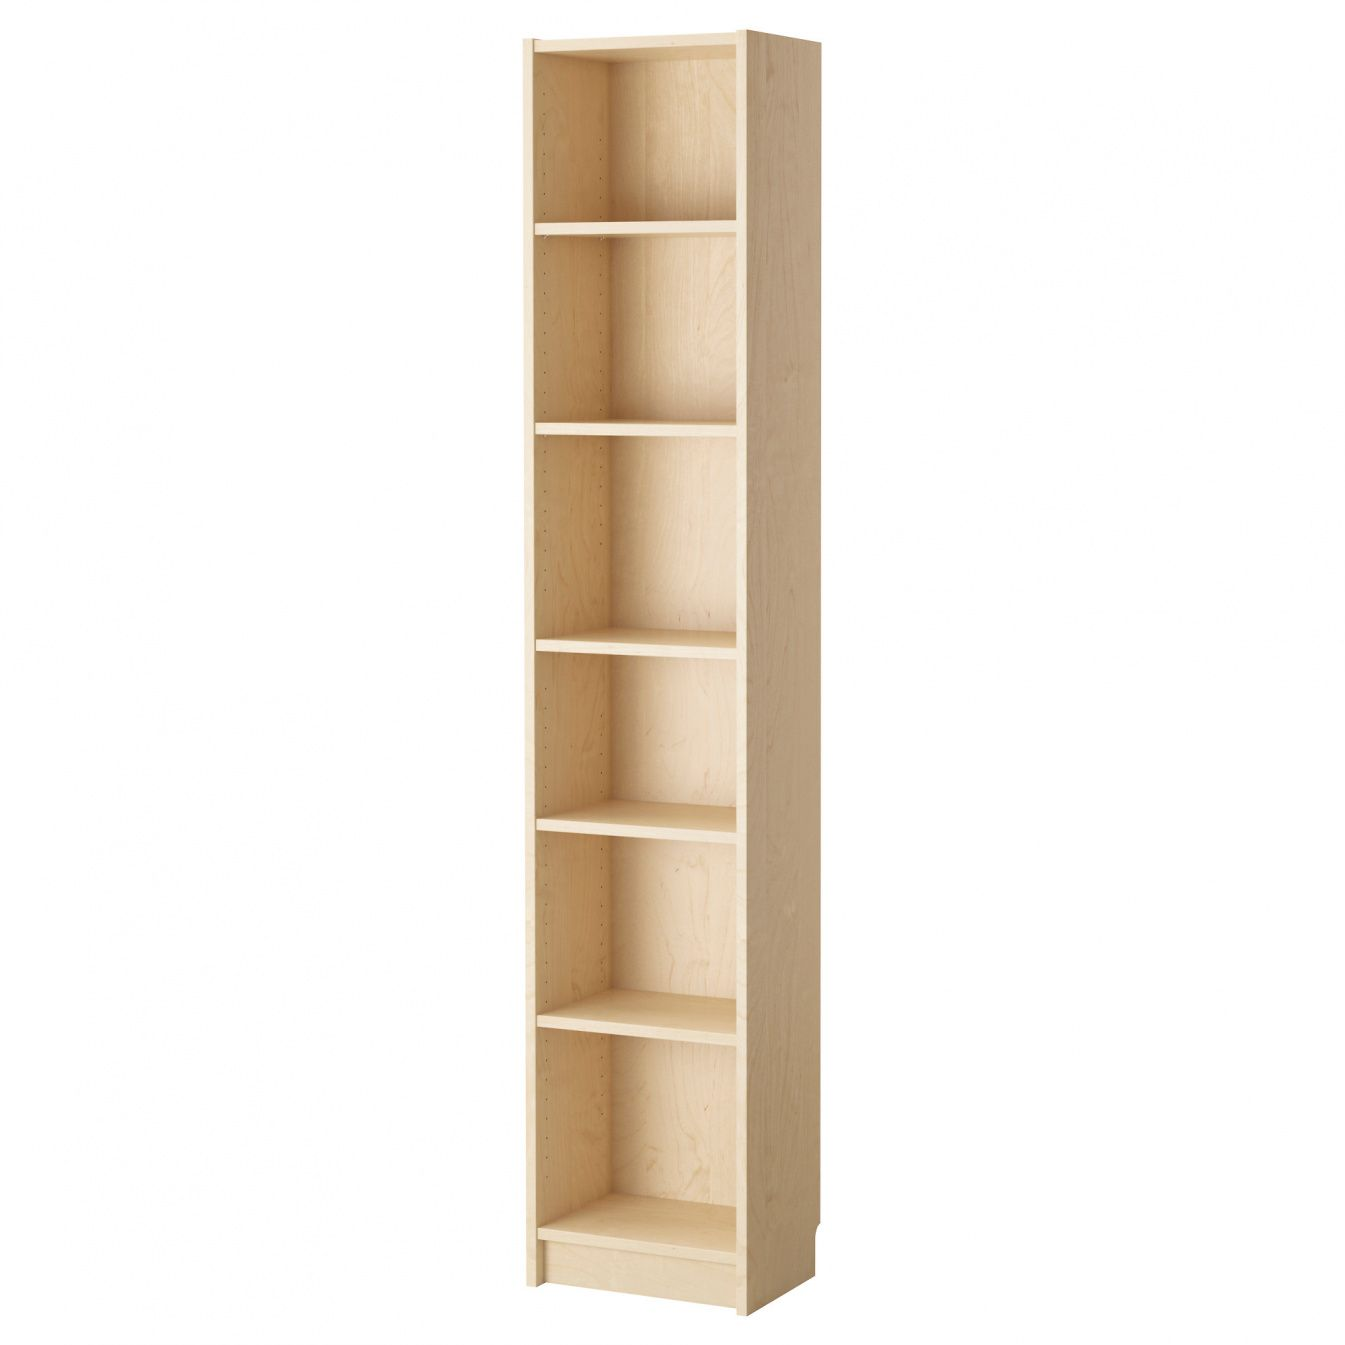 12 Inch Wide Bookcase - Luxury Home Office Furniture Check more at http://fiveinchfloppy.com/12-inch-wide-bookcase/